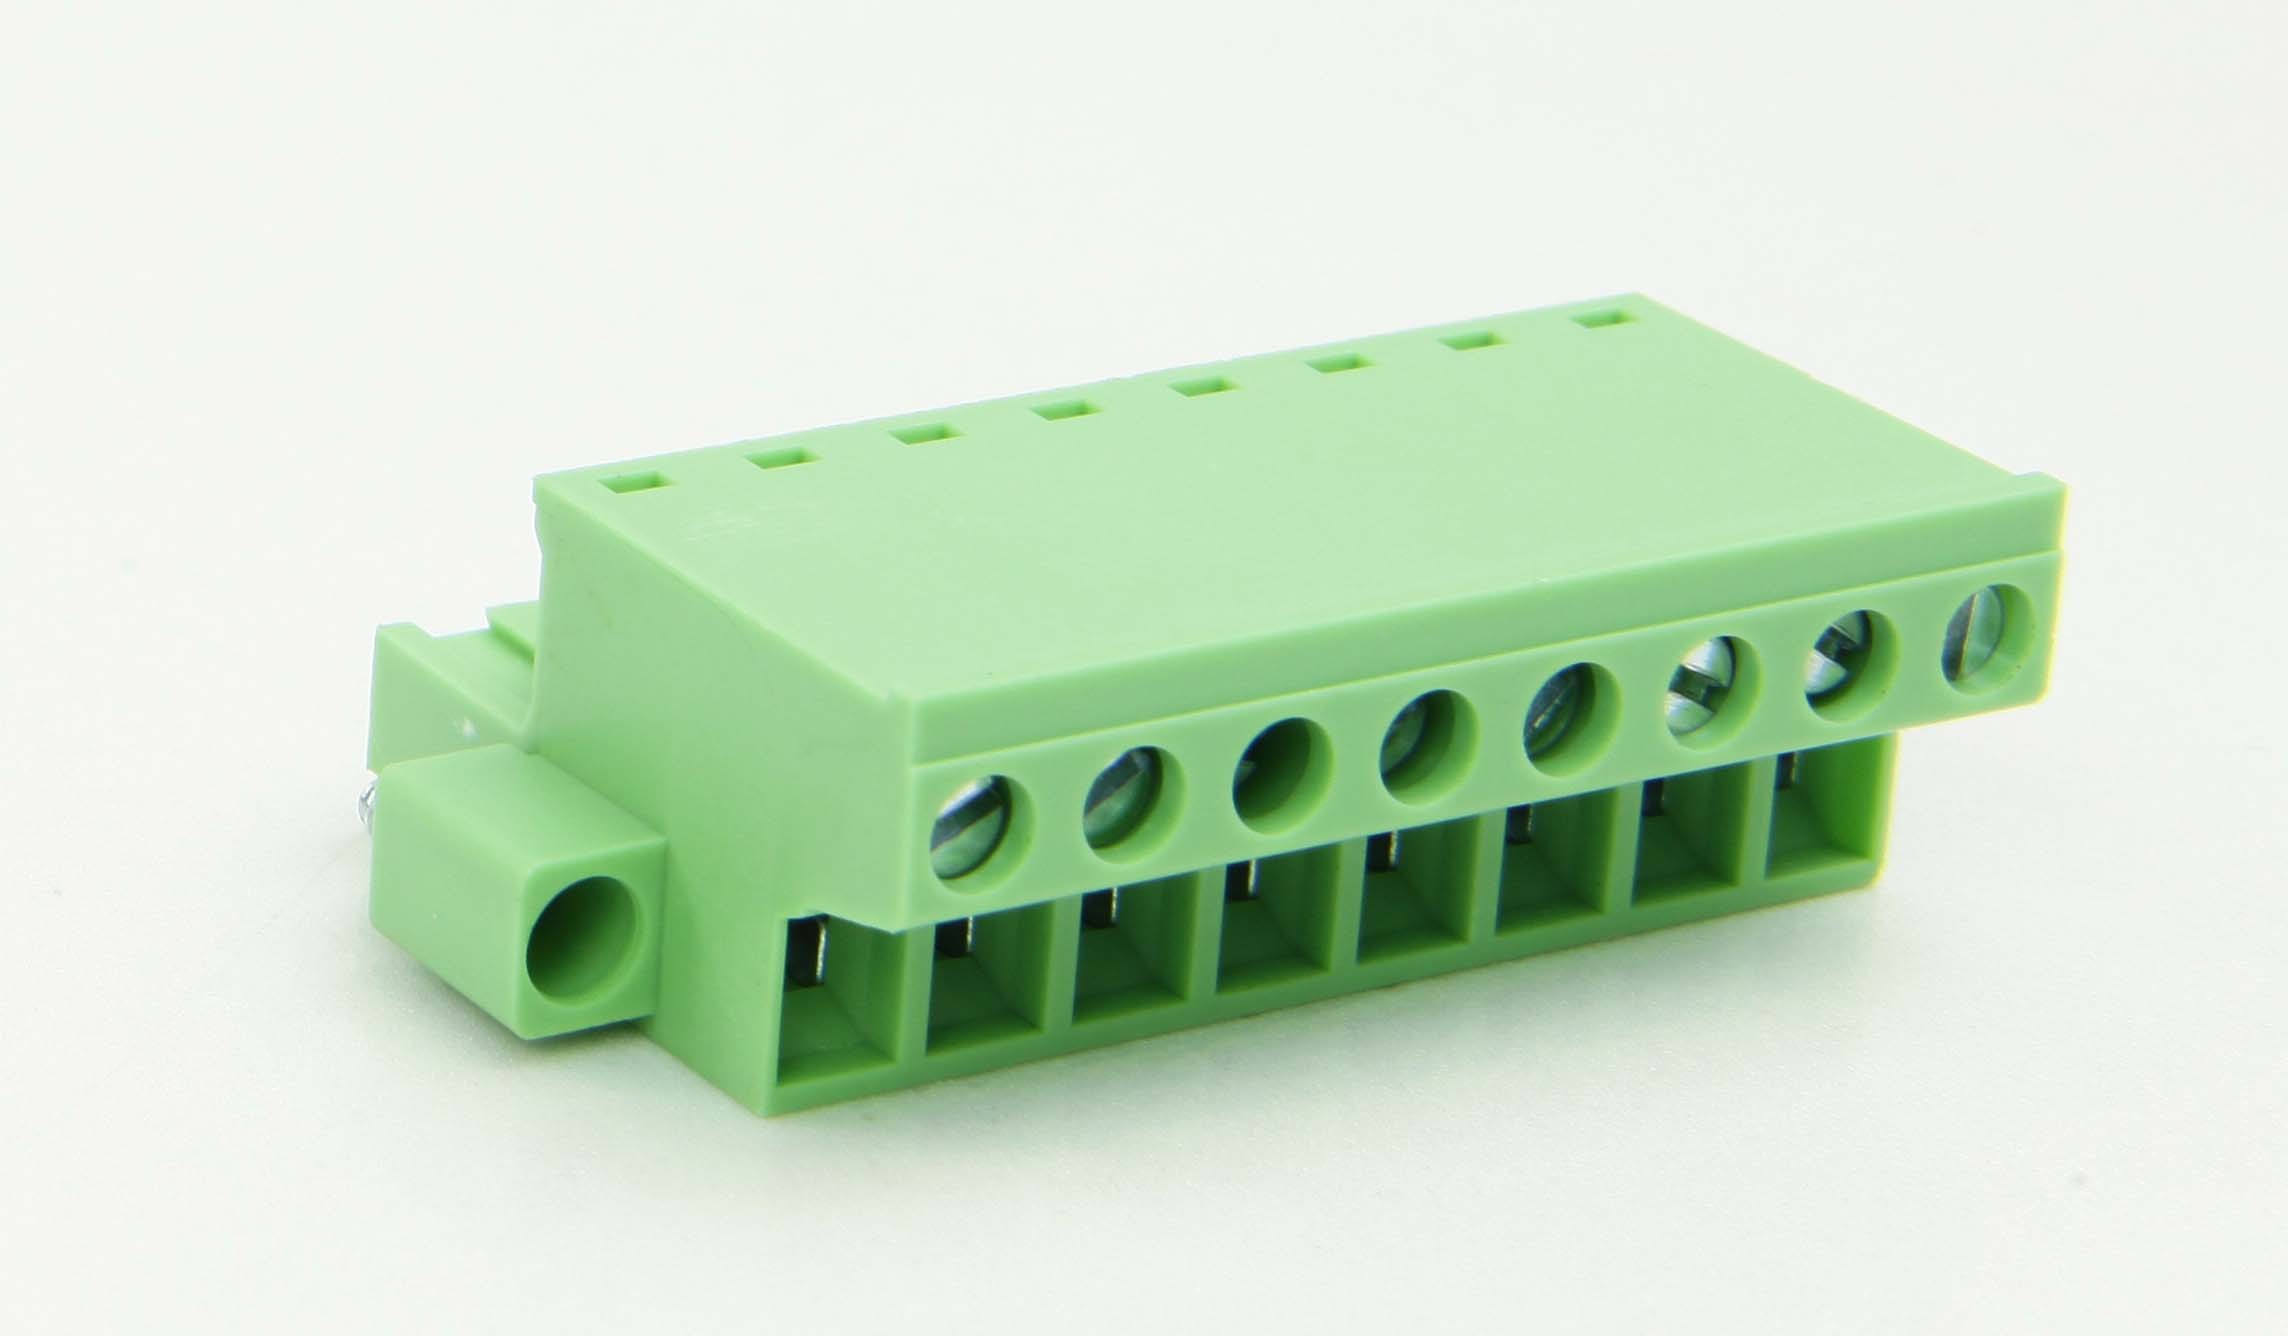 2ELPKCM-5.08 PCB Crimp Connectors